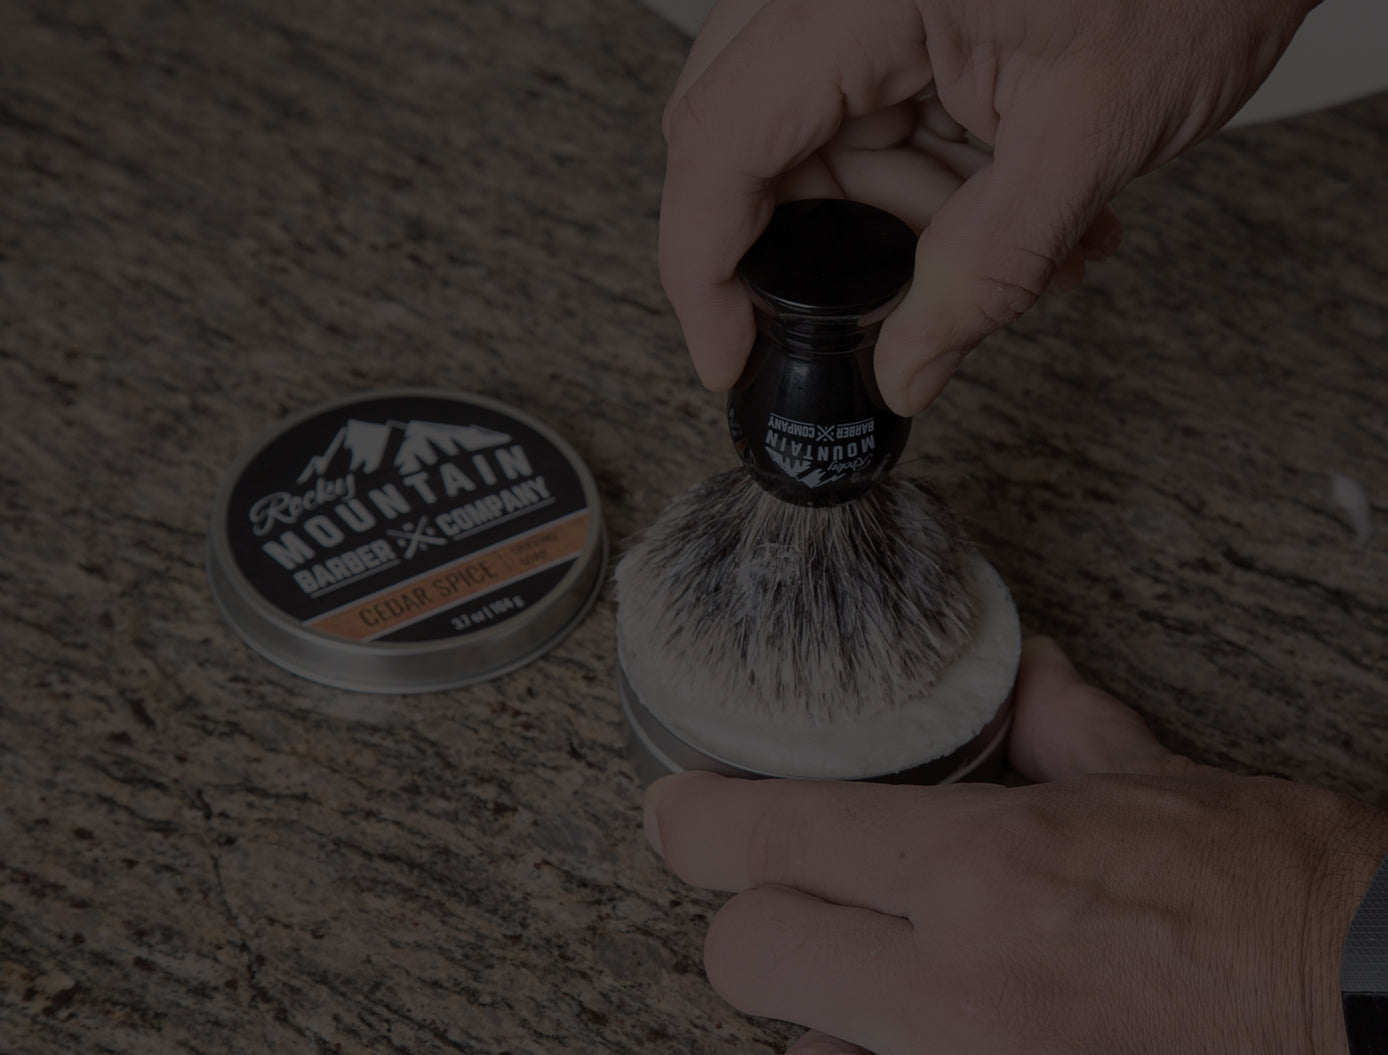 Men's Shaving Creams Collection Shave Gel, Shaving Cream and Shave Soaps